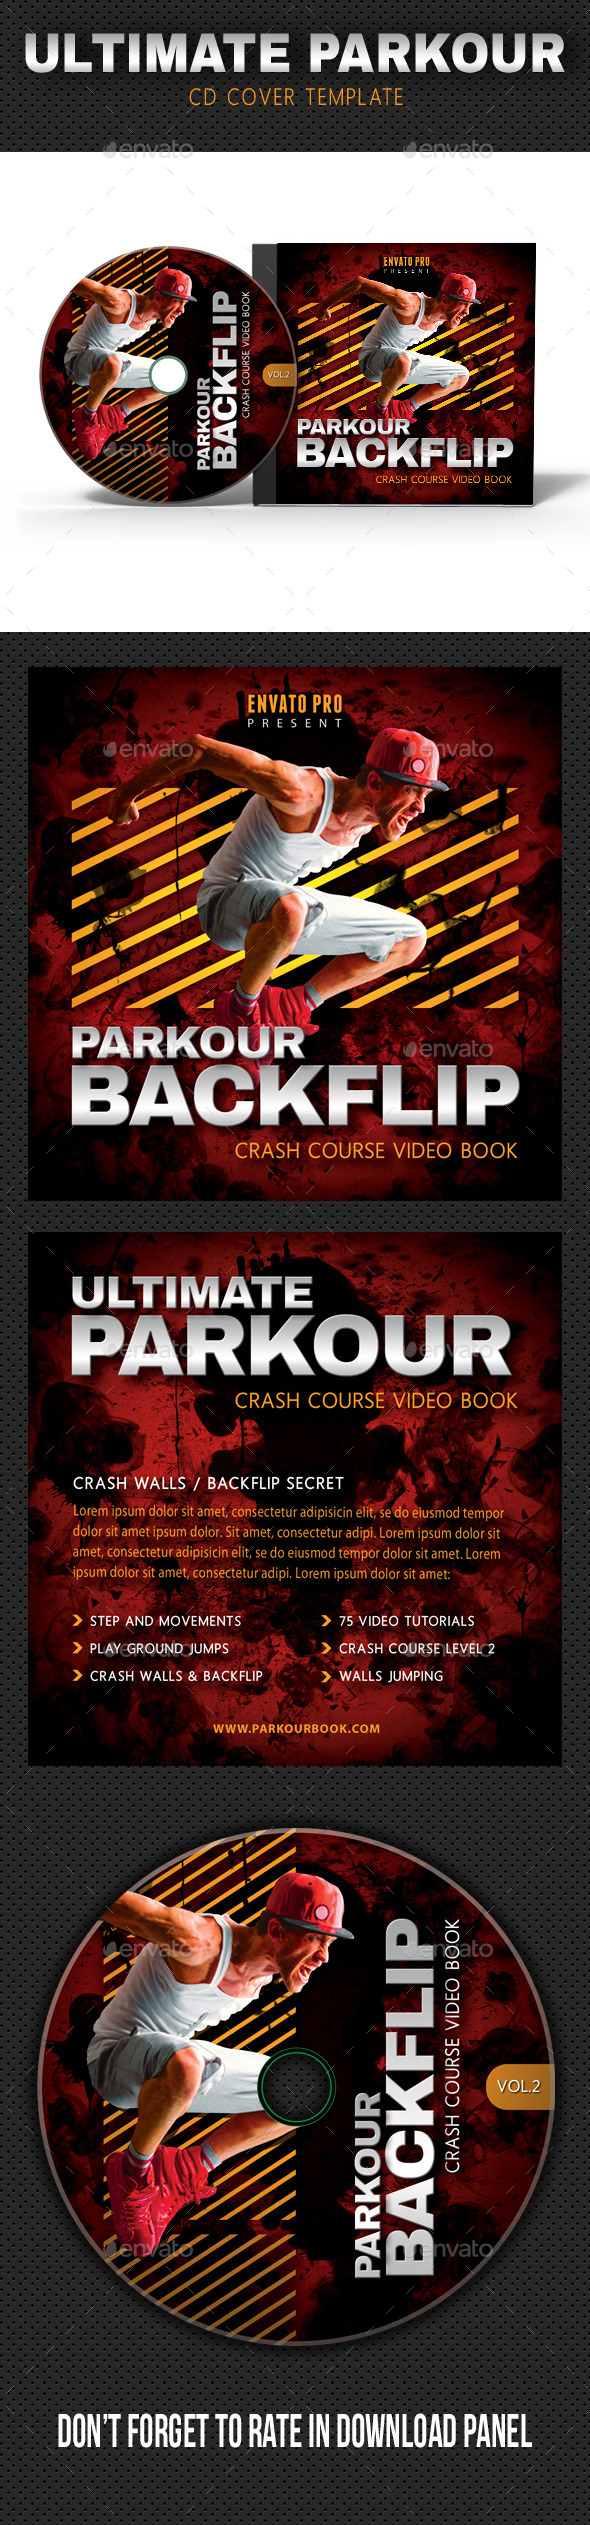 Ultimate Parkour CD Cover V2 - CD & DVD Artwork Print Templates